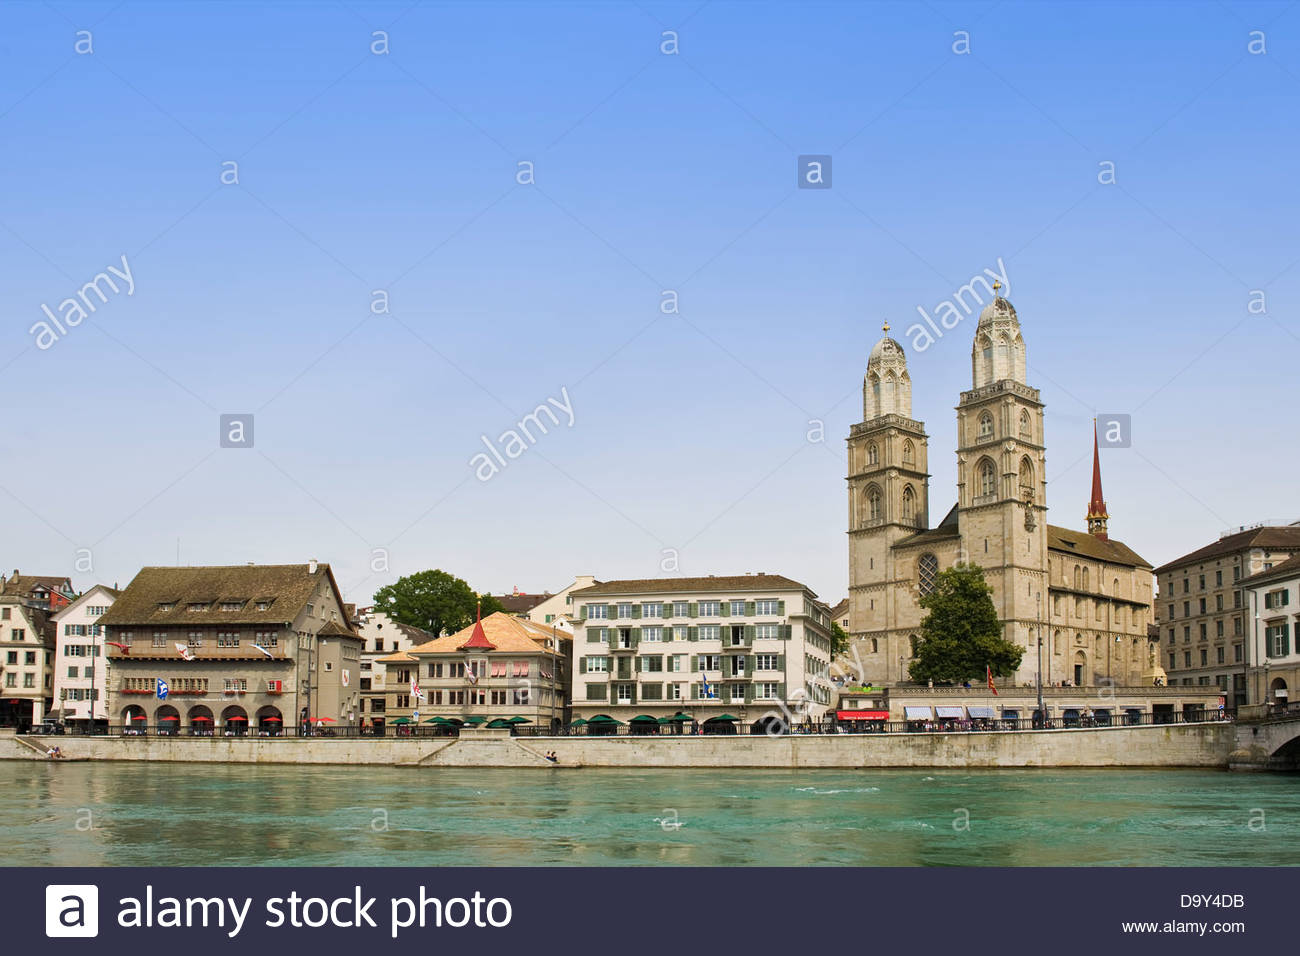 Grossmunster church,Zurich,Switzerland - Stock Image